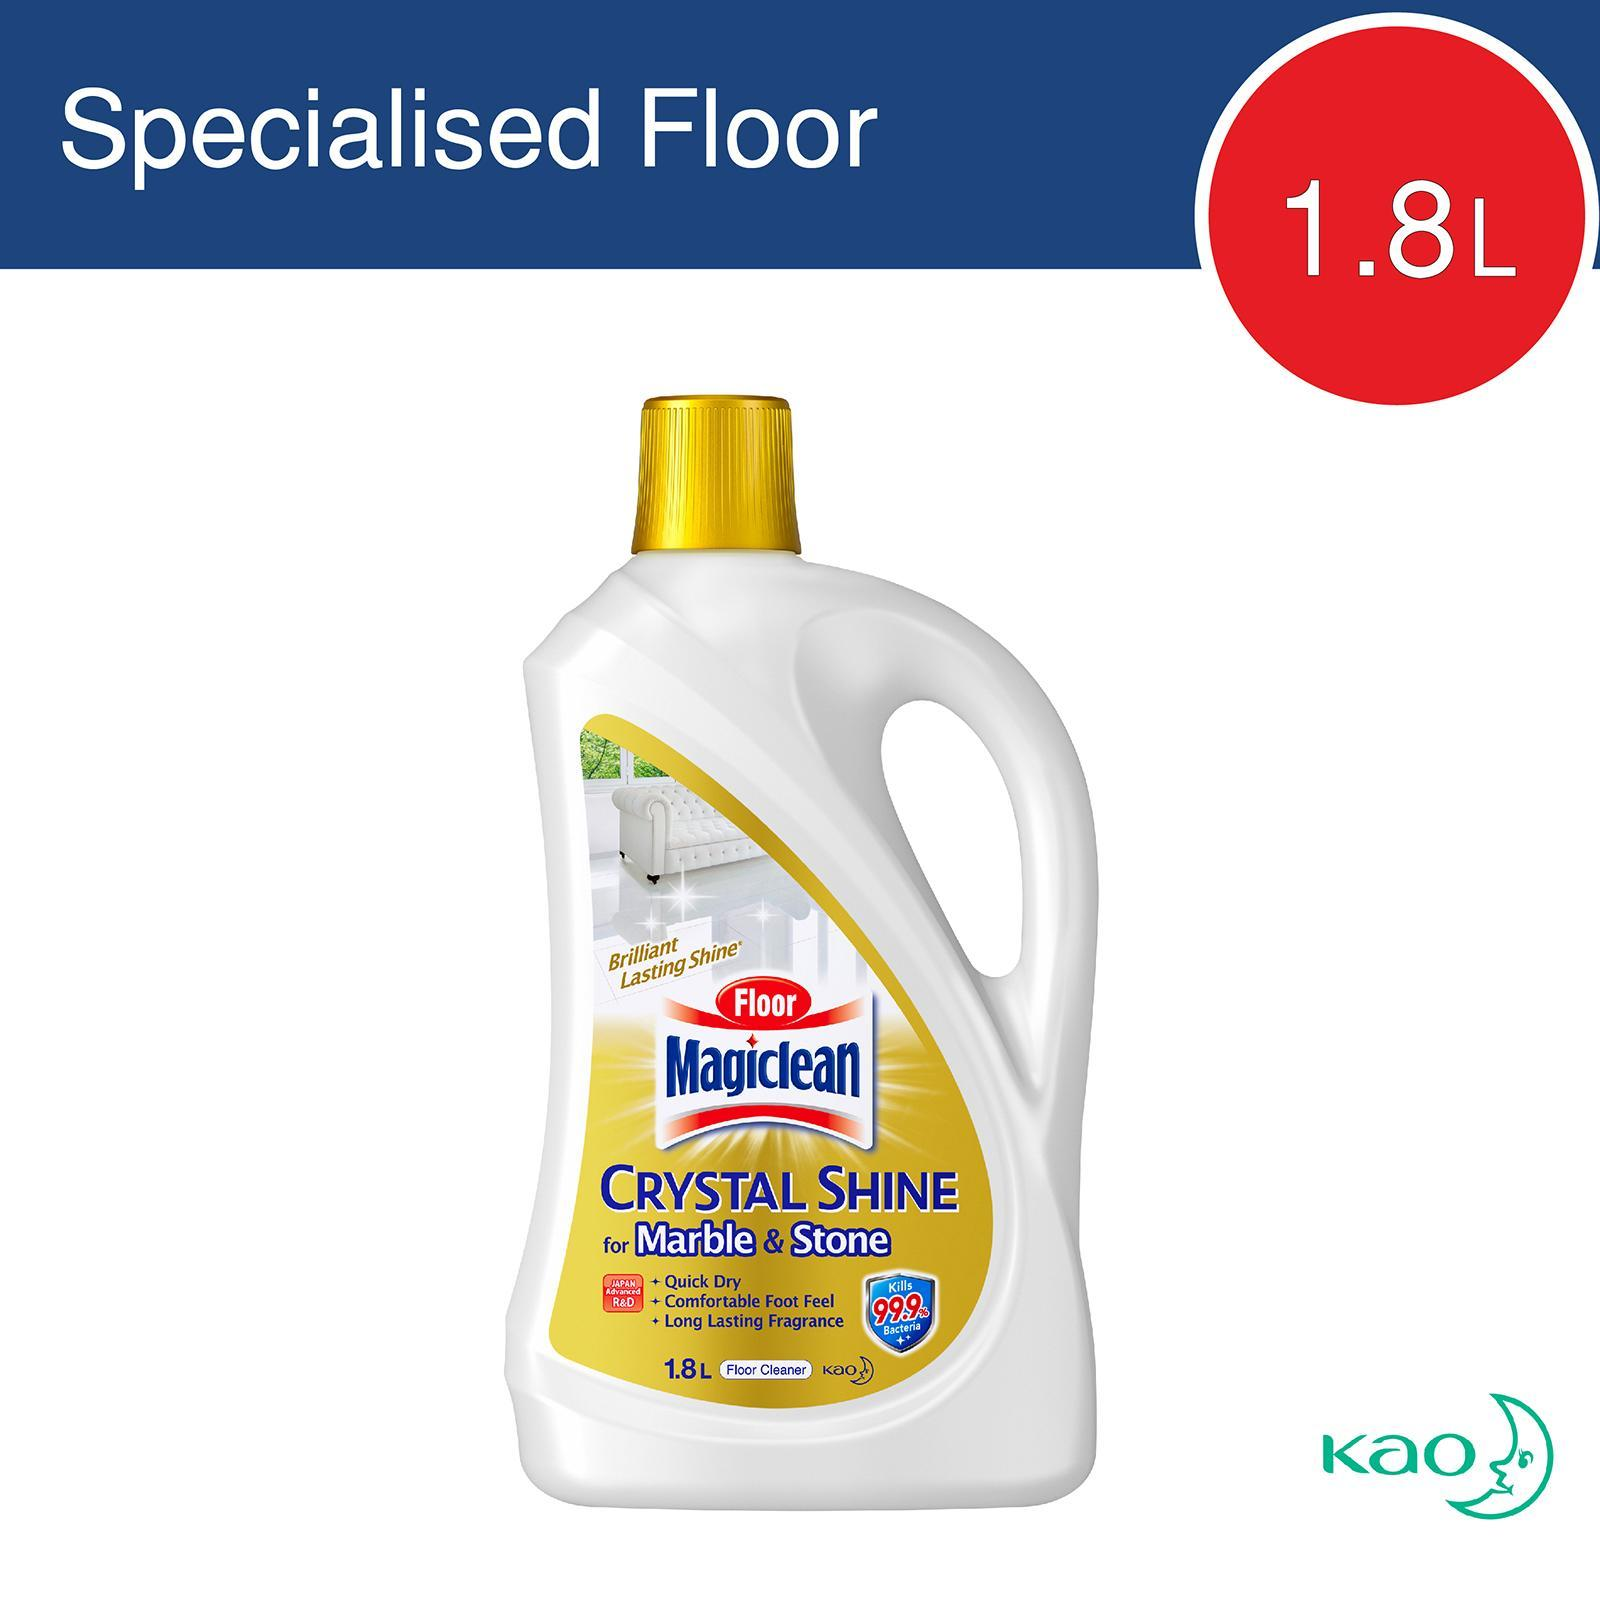 MAGICLEAN Crystal Shine Floor Cleaner - Marble & Stone 1.8L